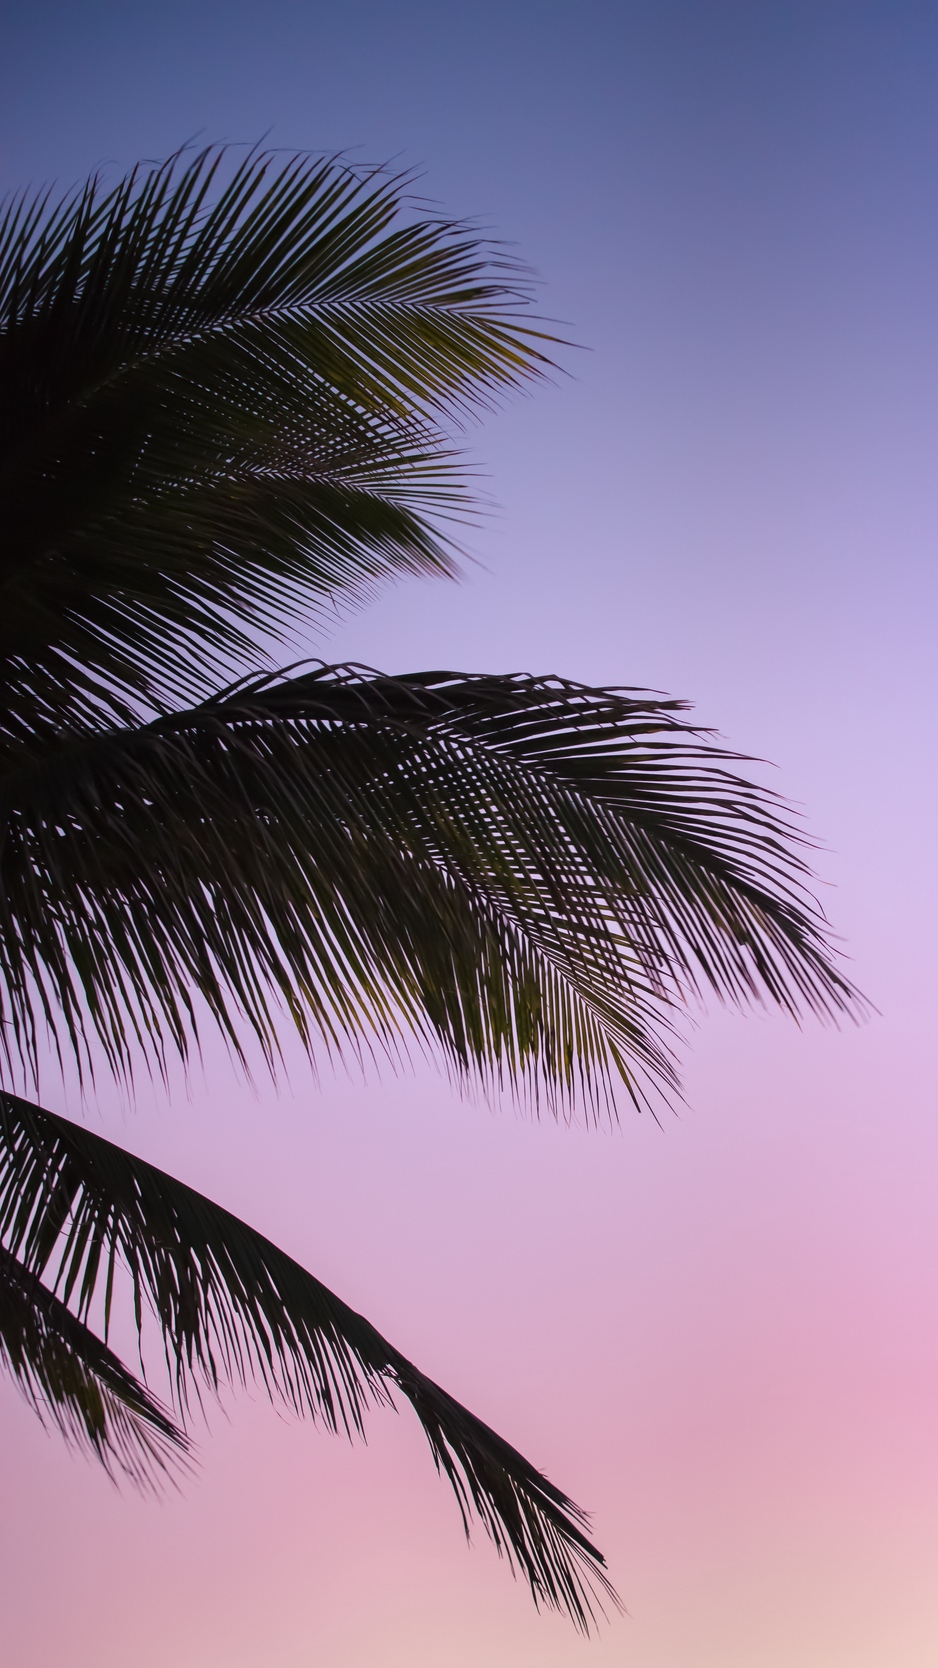 Wallpaper Branch Palm Leaves Sky Sunset Evening Palm Leaves Hd 502907 Hd Wallpaper Backgrounds Download Find over 100+ of the best free tropical leaves images. wallpaper branch palm leaves sky